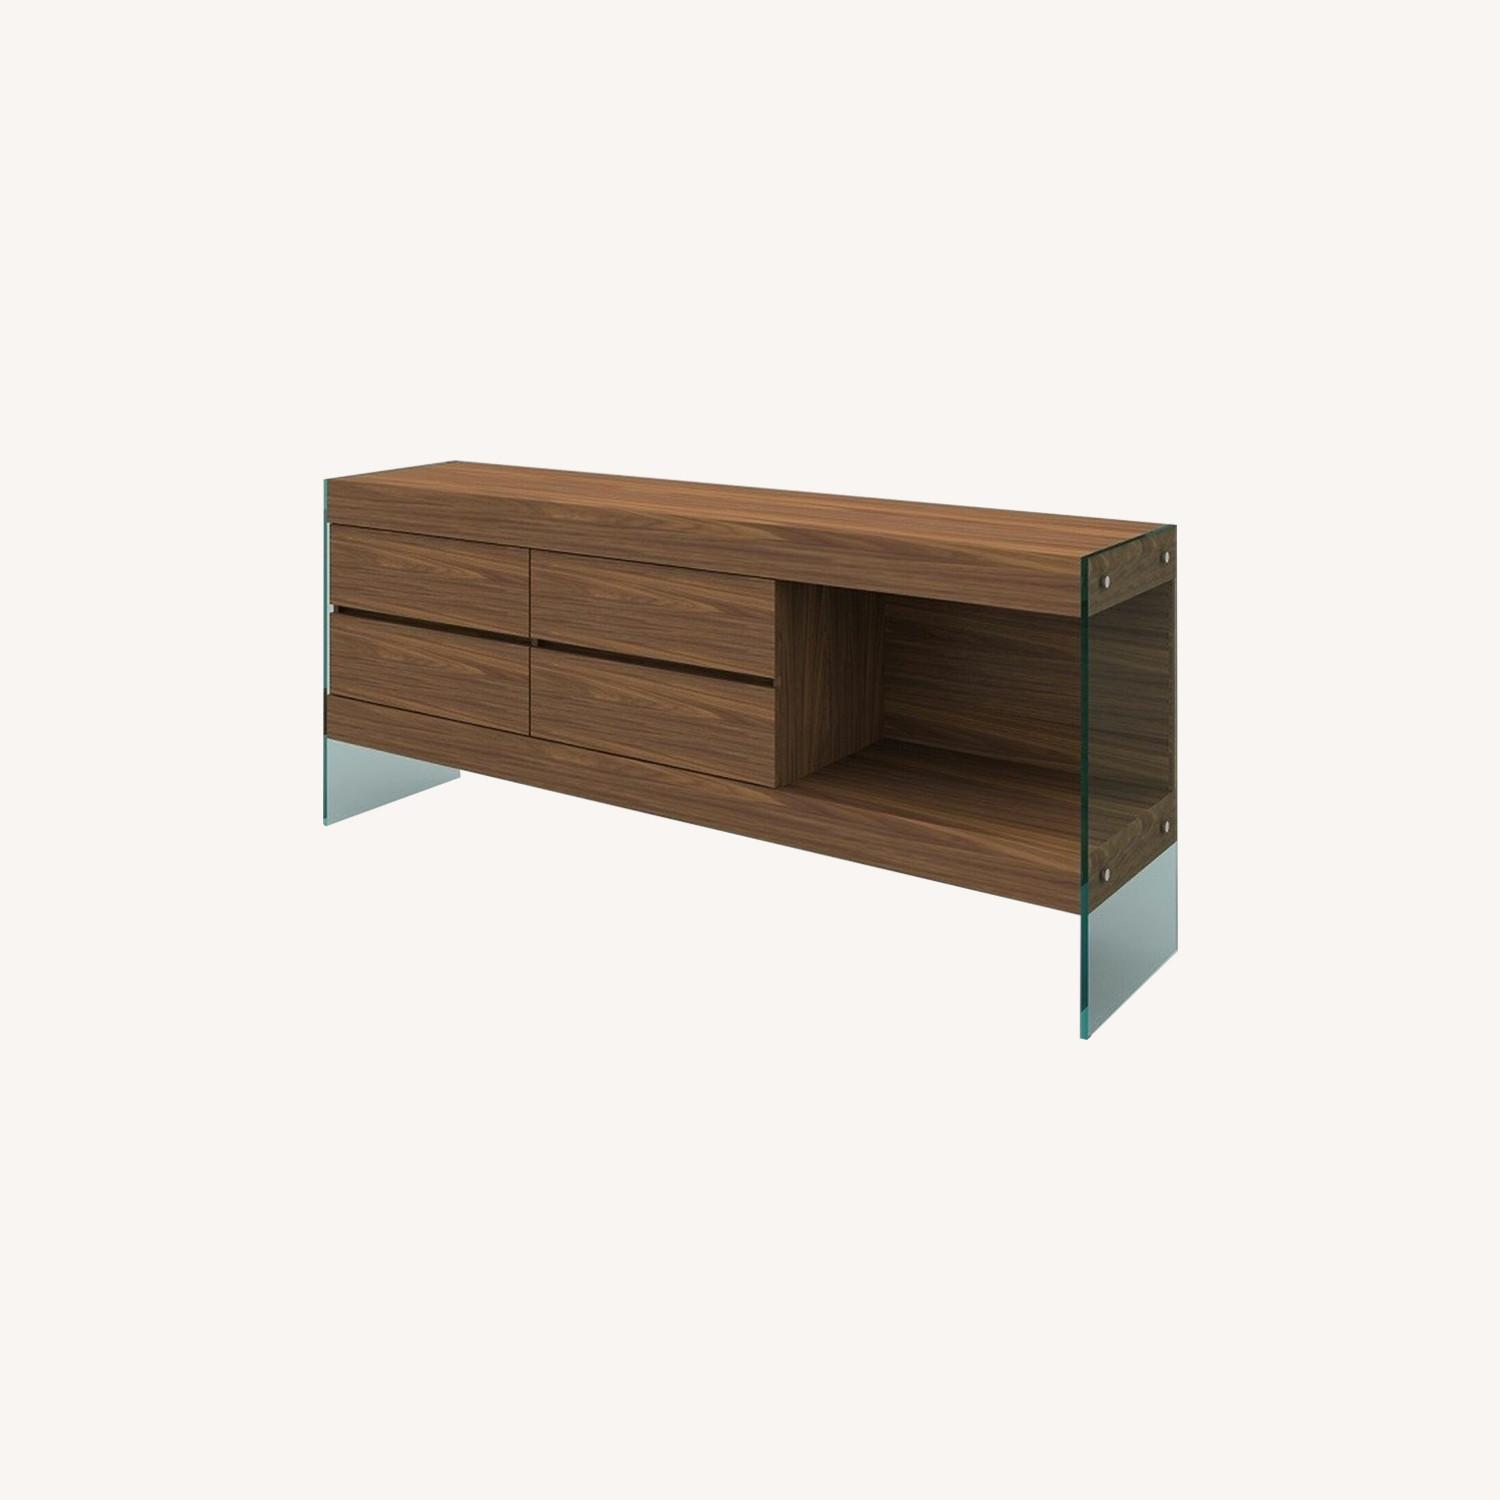 Buffet Crafted In Walnut Matte Finish W/ 4 Drawers - image-3